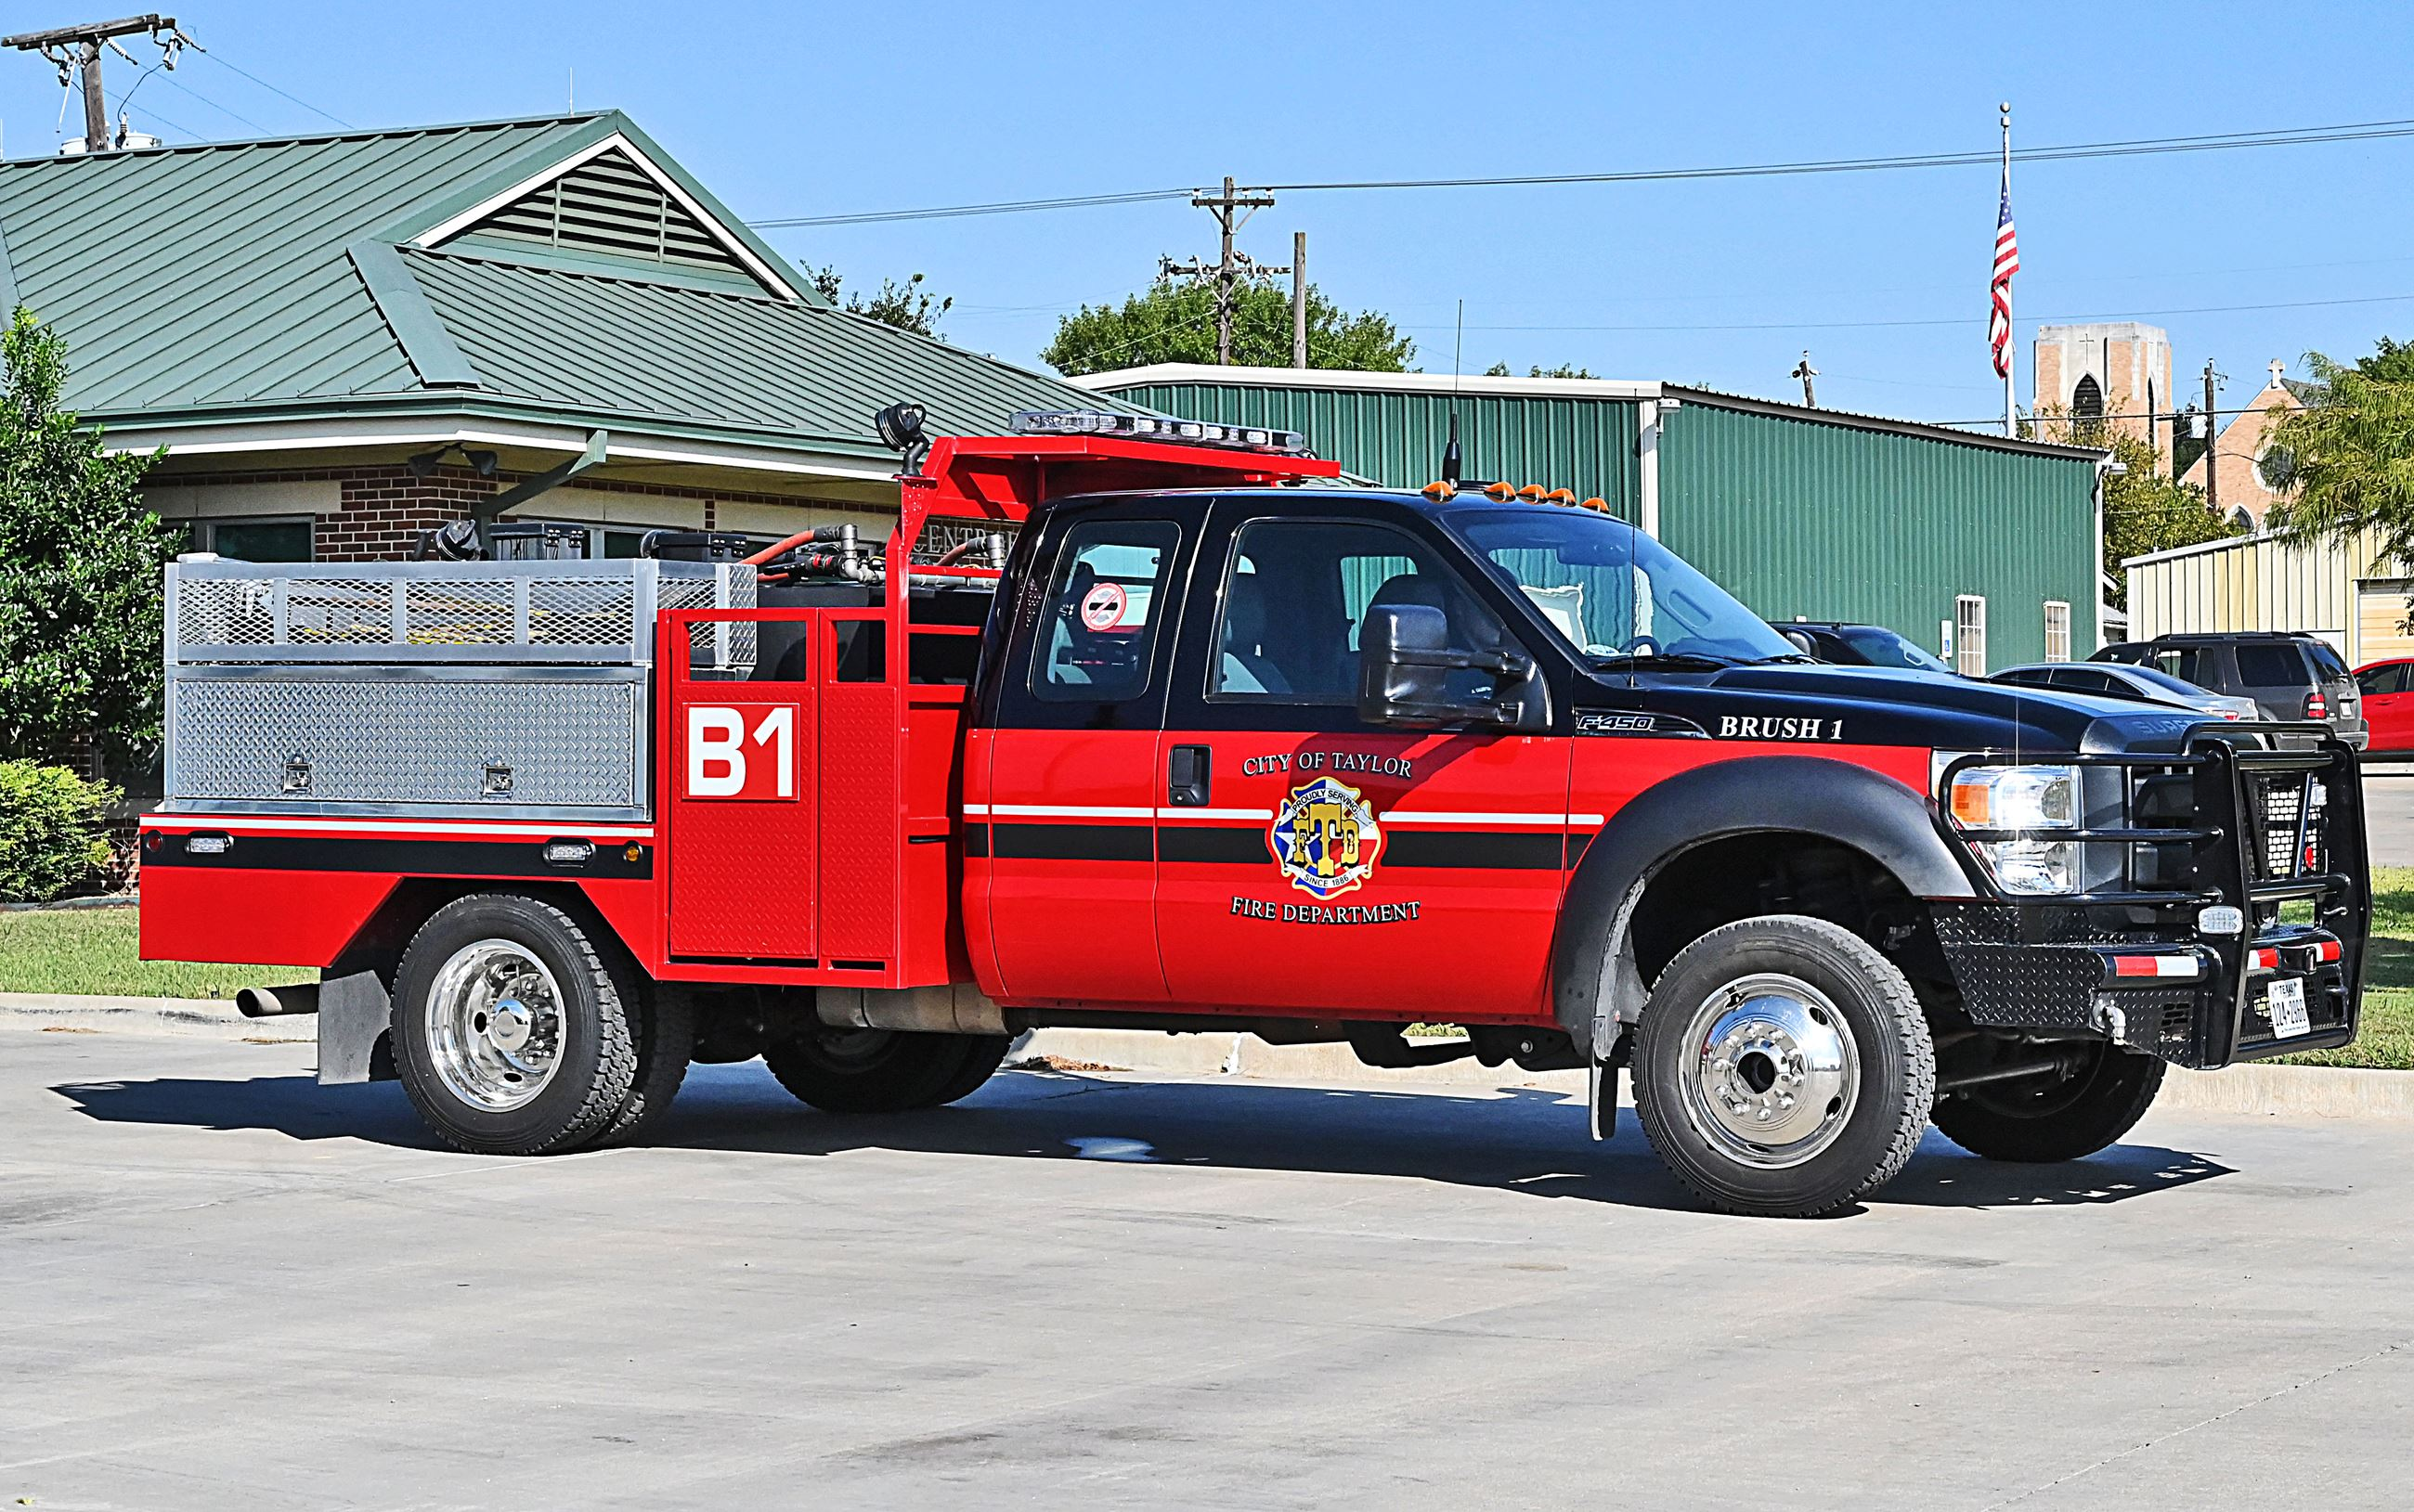 Photo of Fire Department Brush 1 Truck